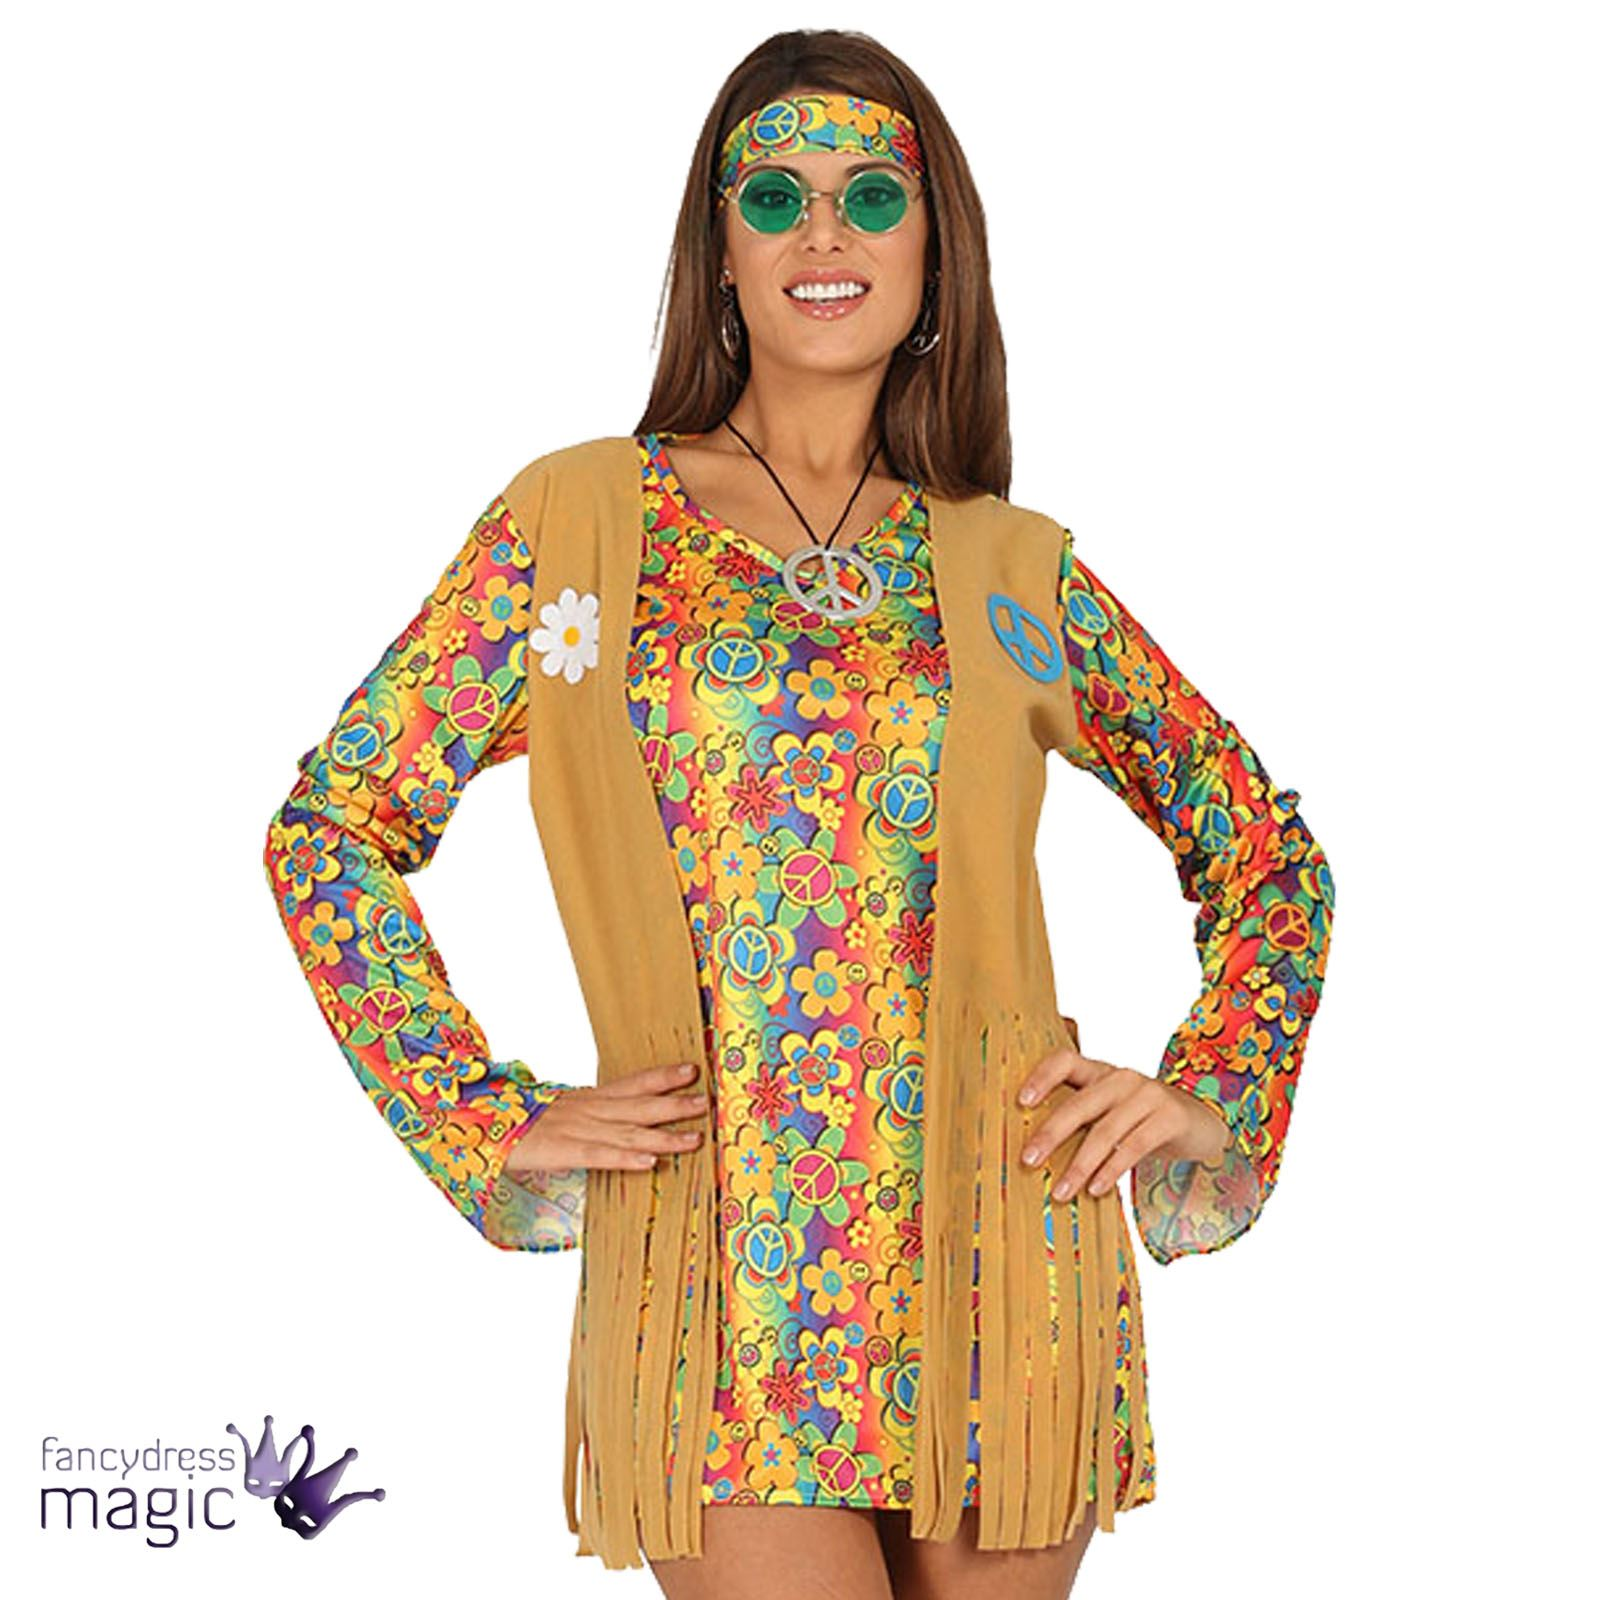 ladies 60s 70s hippie hippy fancy dress sexy flower power costume with waistcoat ebay. Black Bedroom Furniture Sets. Home Design Ideas